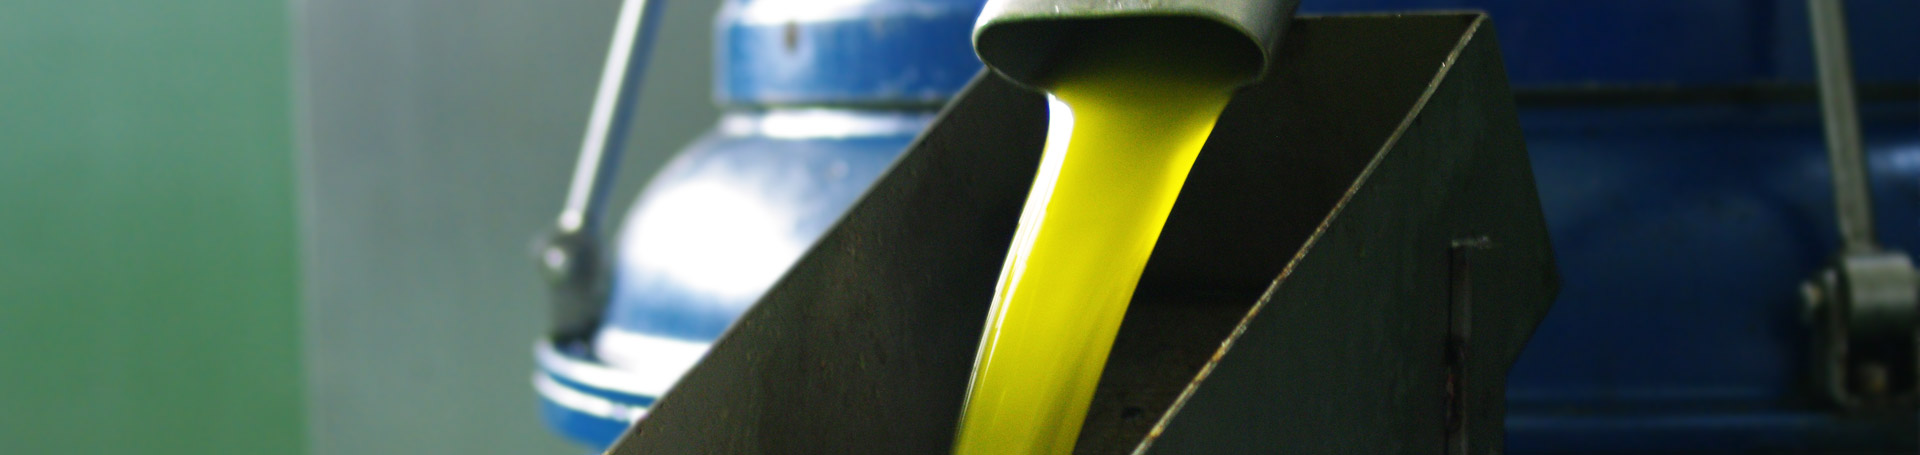 Elitagro, extra virgin olive oil production